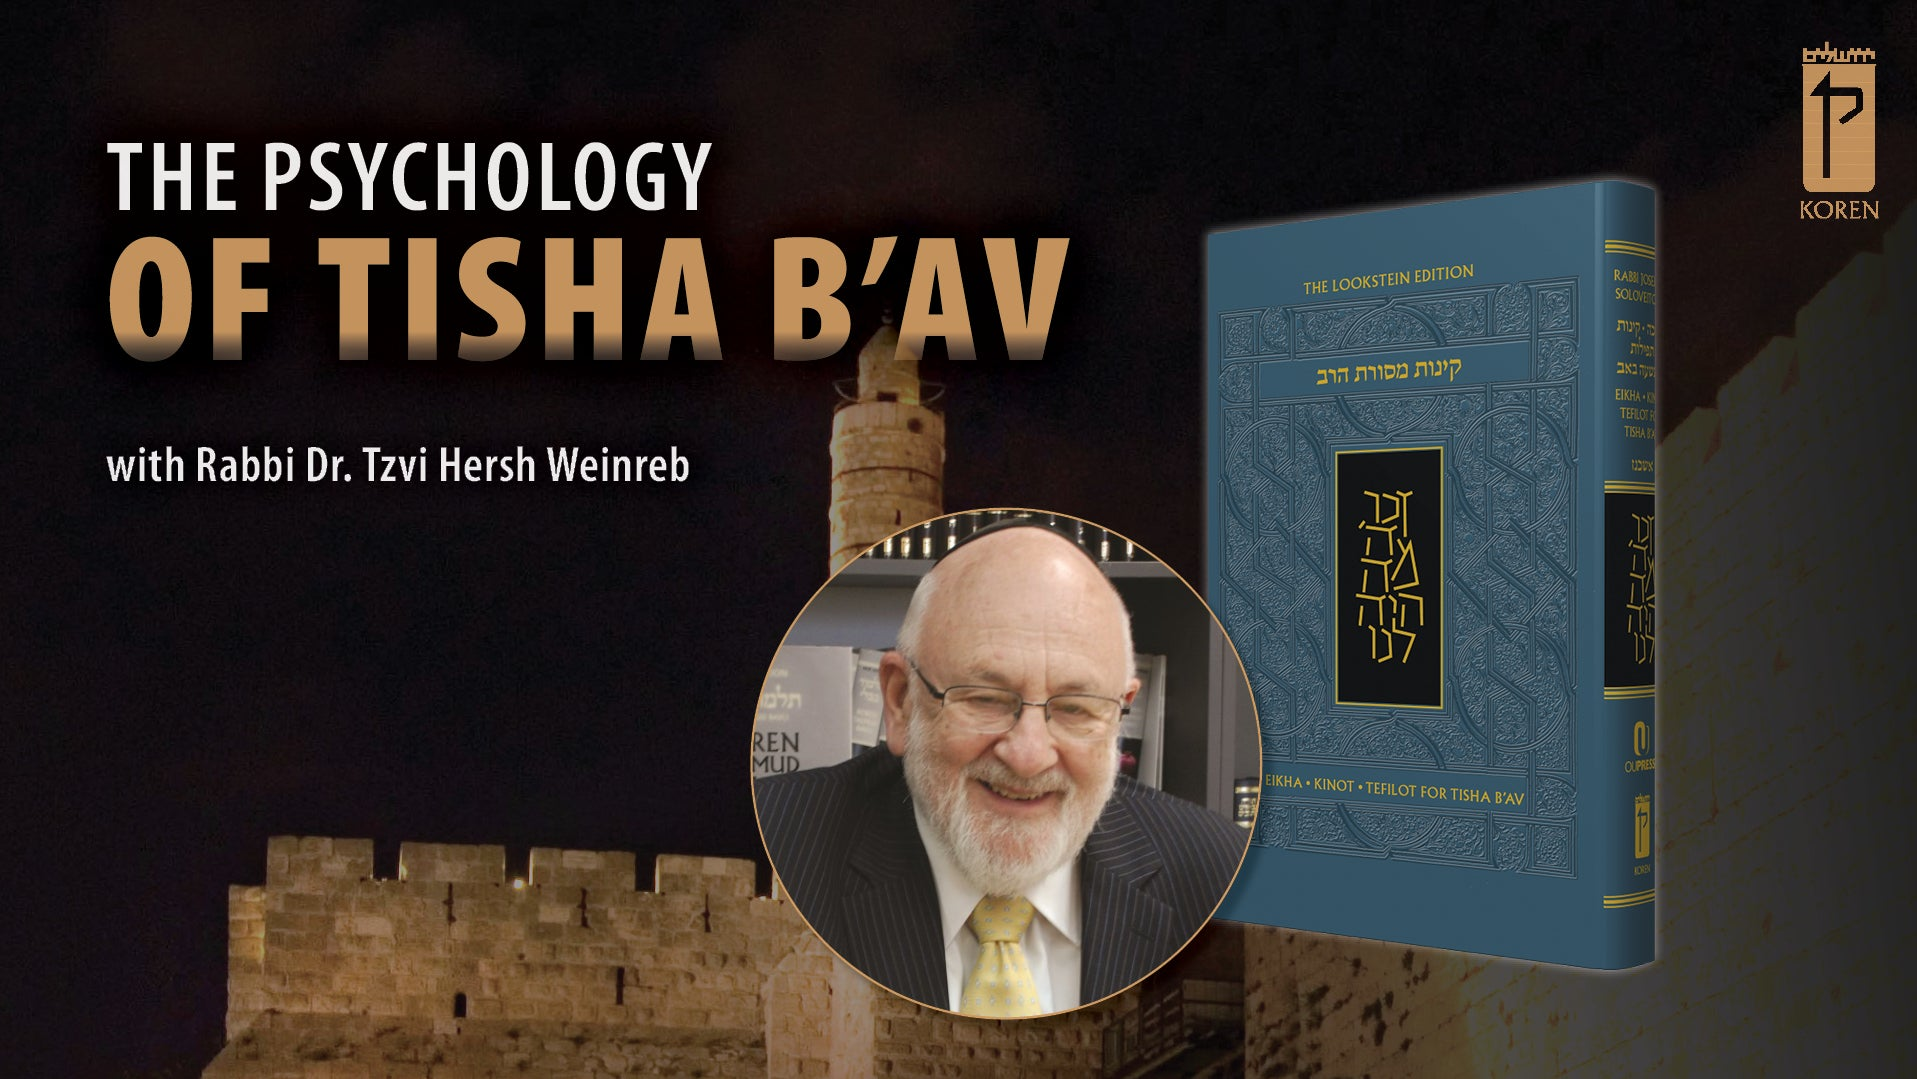 The Psychology of Tisha B'Av & Kinot: 5 Questions for Rabbi Dr. Tzvi Hersh Weinreb